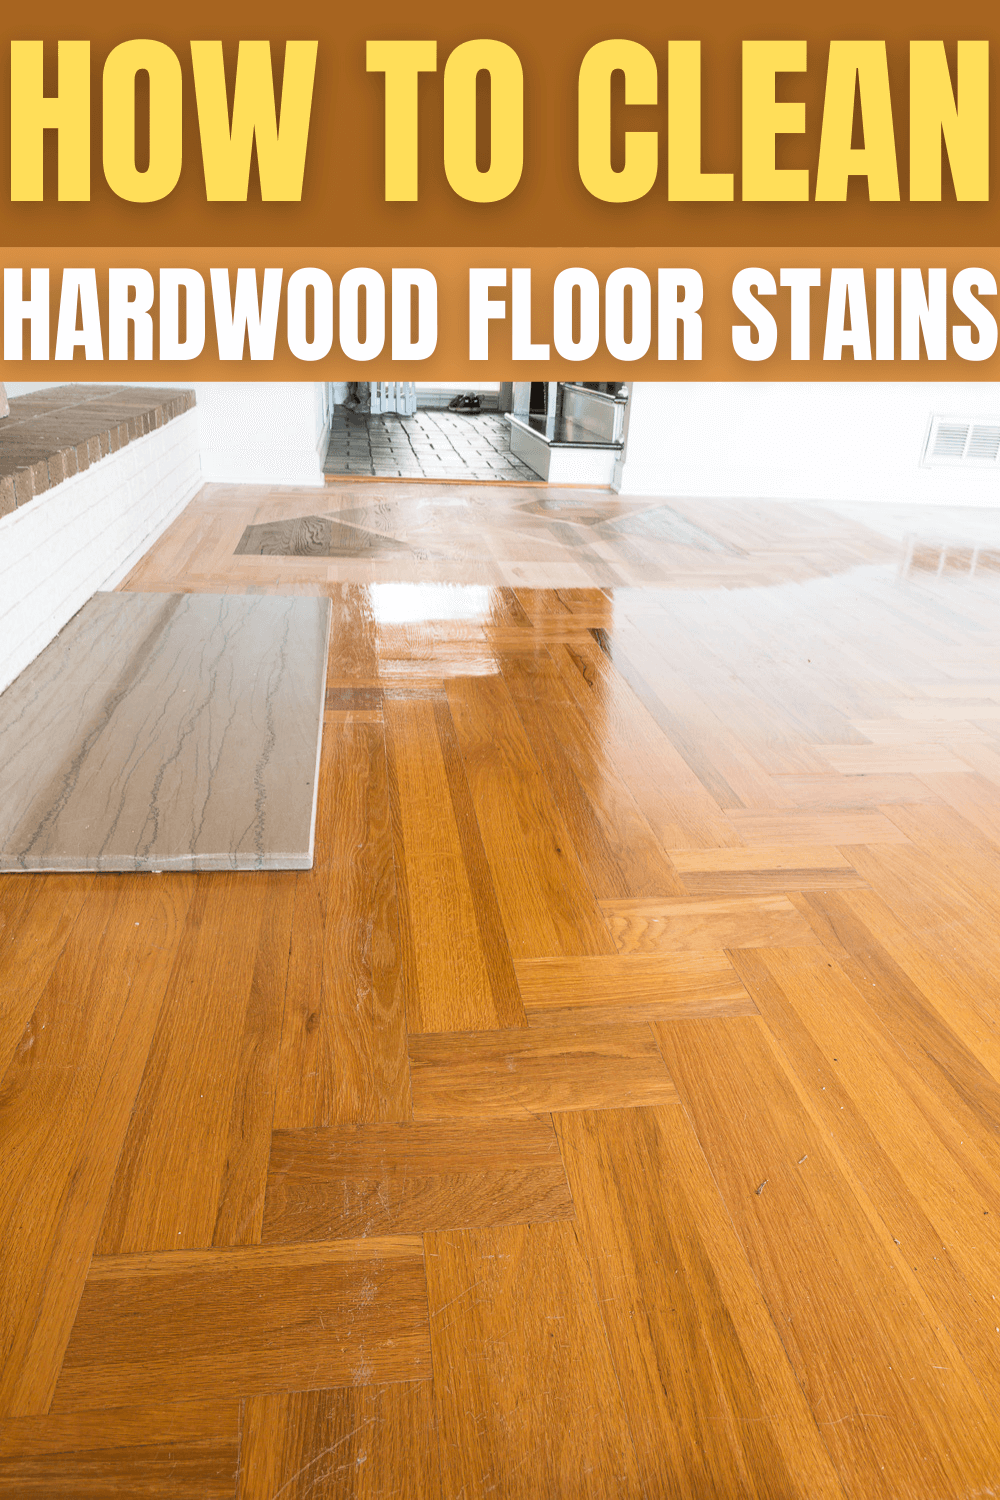 HOW TO CLEAN HARDWOOD FLOOR STAINS